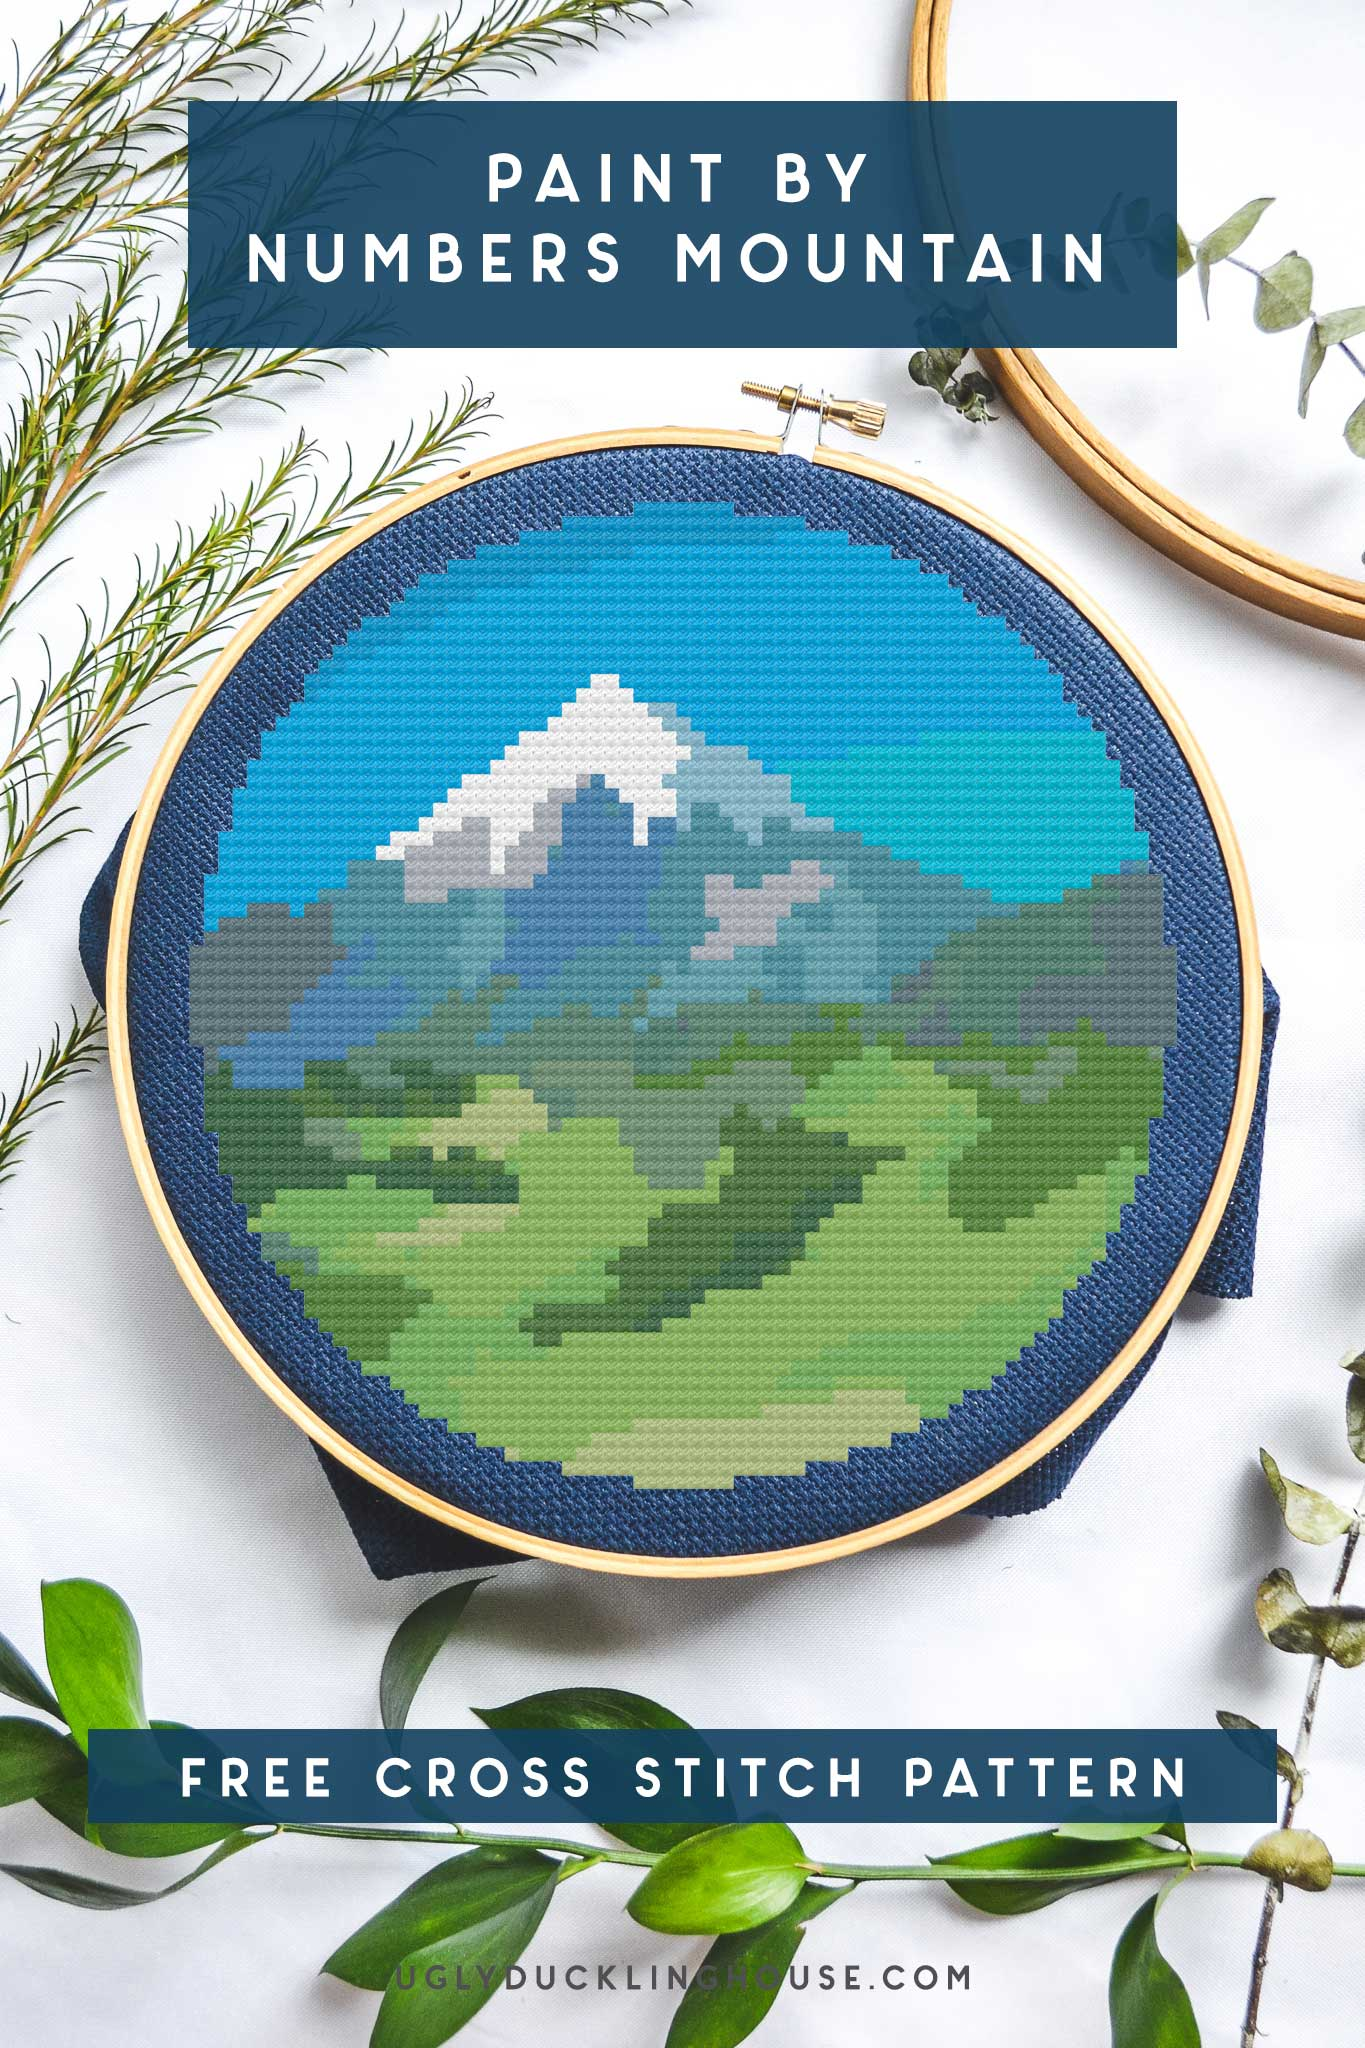 paint-by-numbers-mountain-free-cross-stitch-pattern